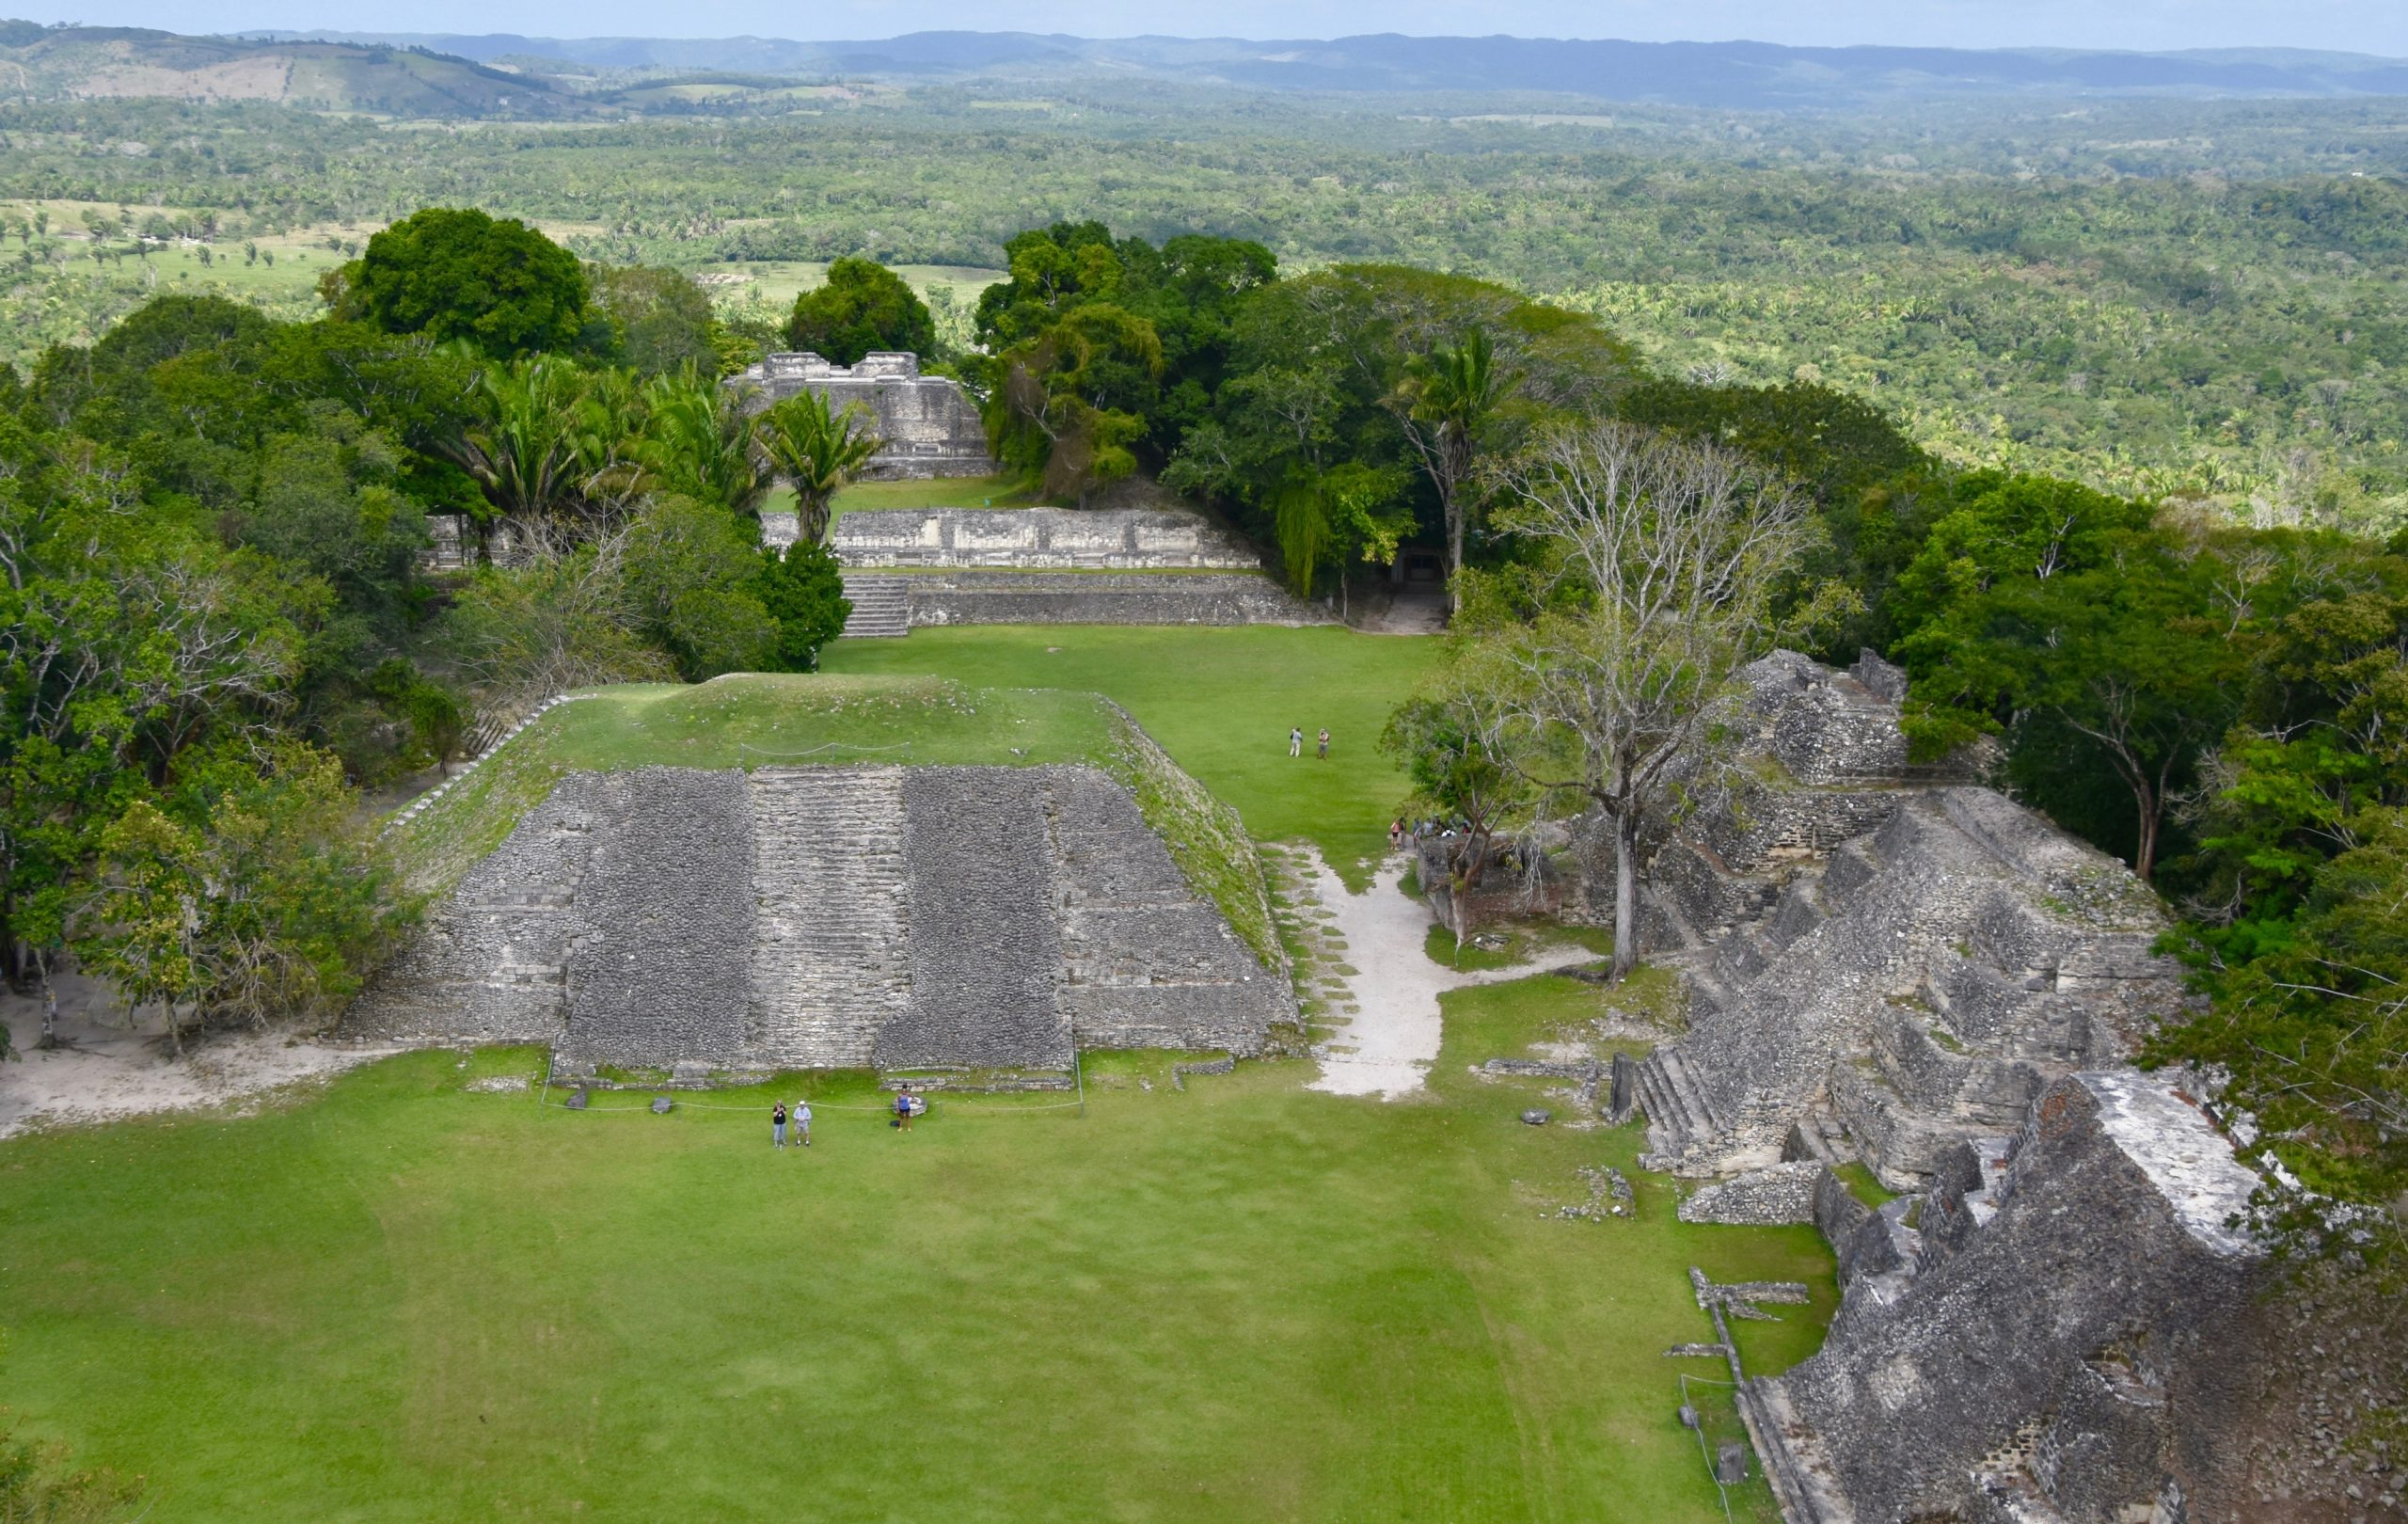 View from El Castillo, Belize